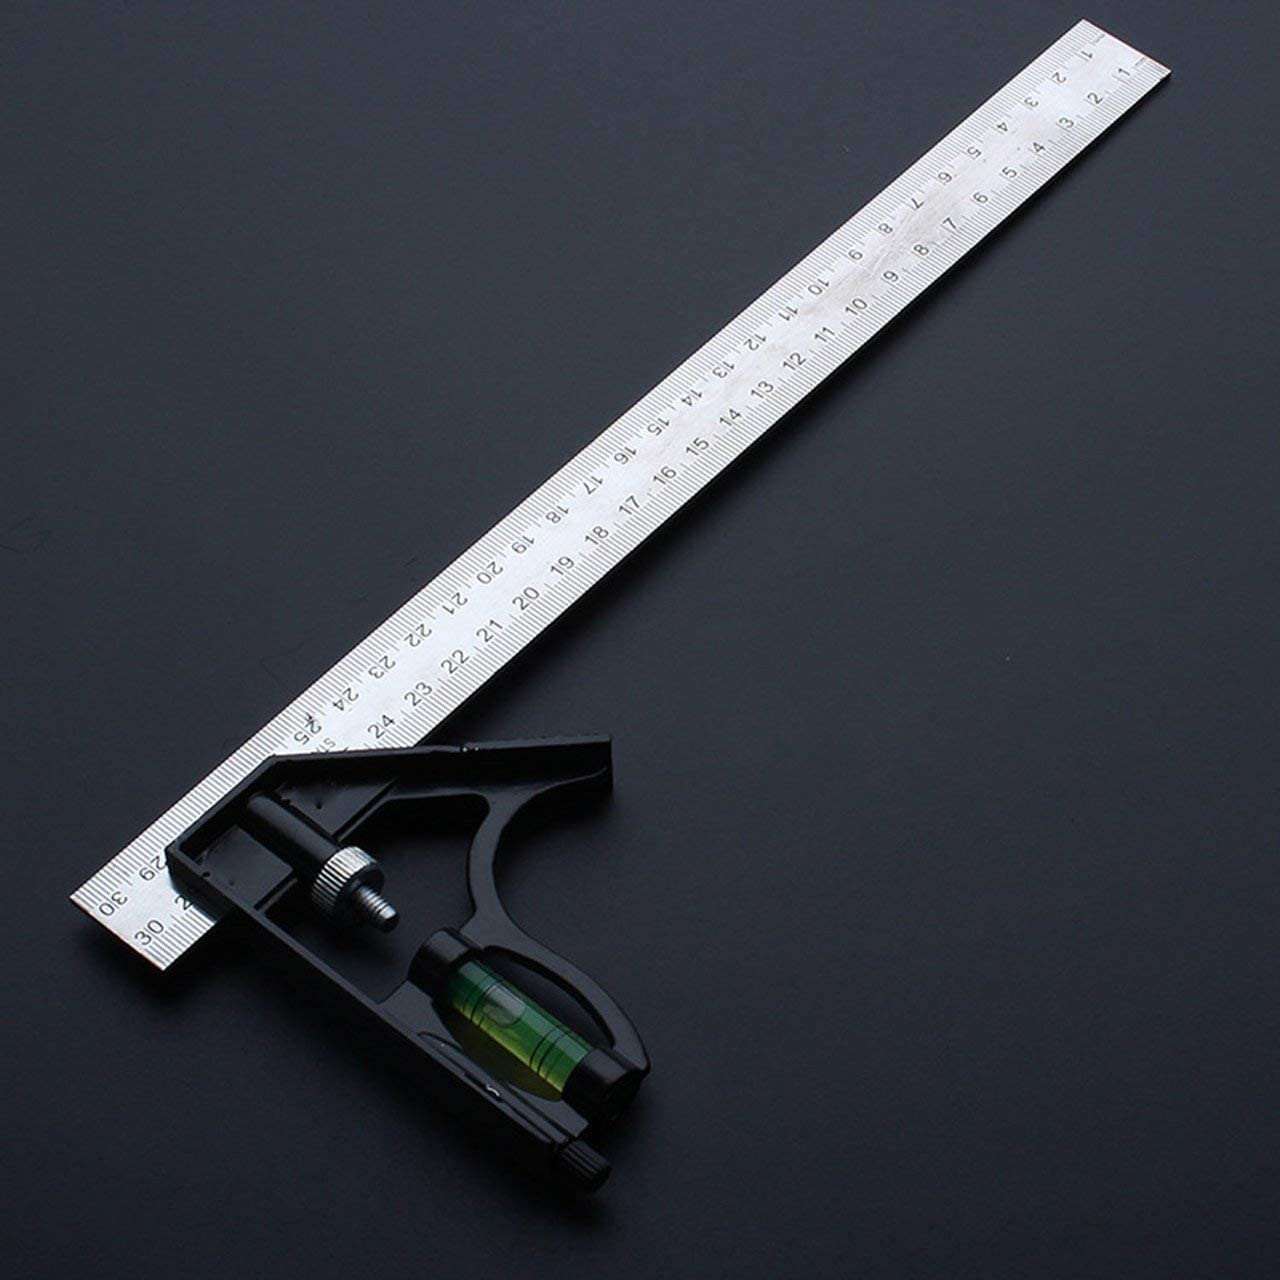 300Mm Adjustable Combination Square Angle Ruler 45//90 Degree with Bubble Level Multifunctional Gauge Measuring Tools